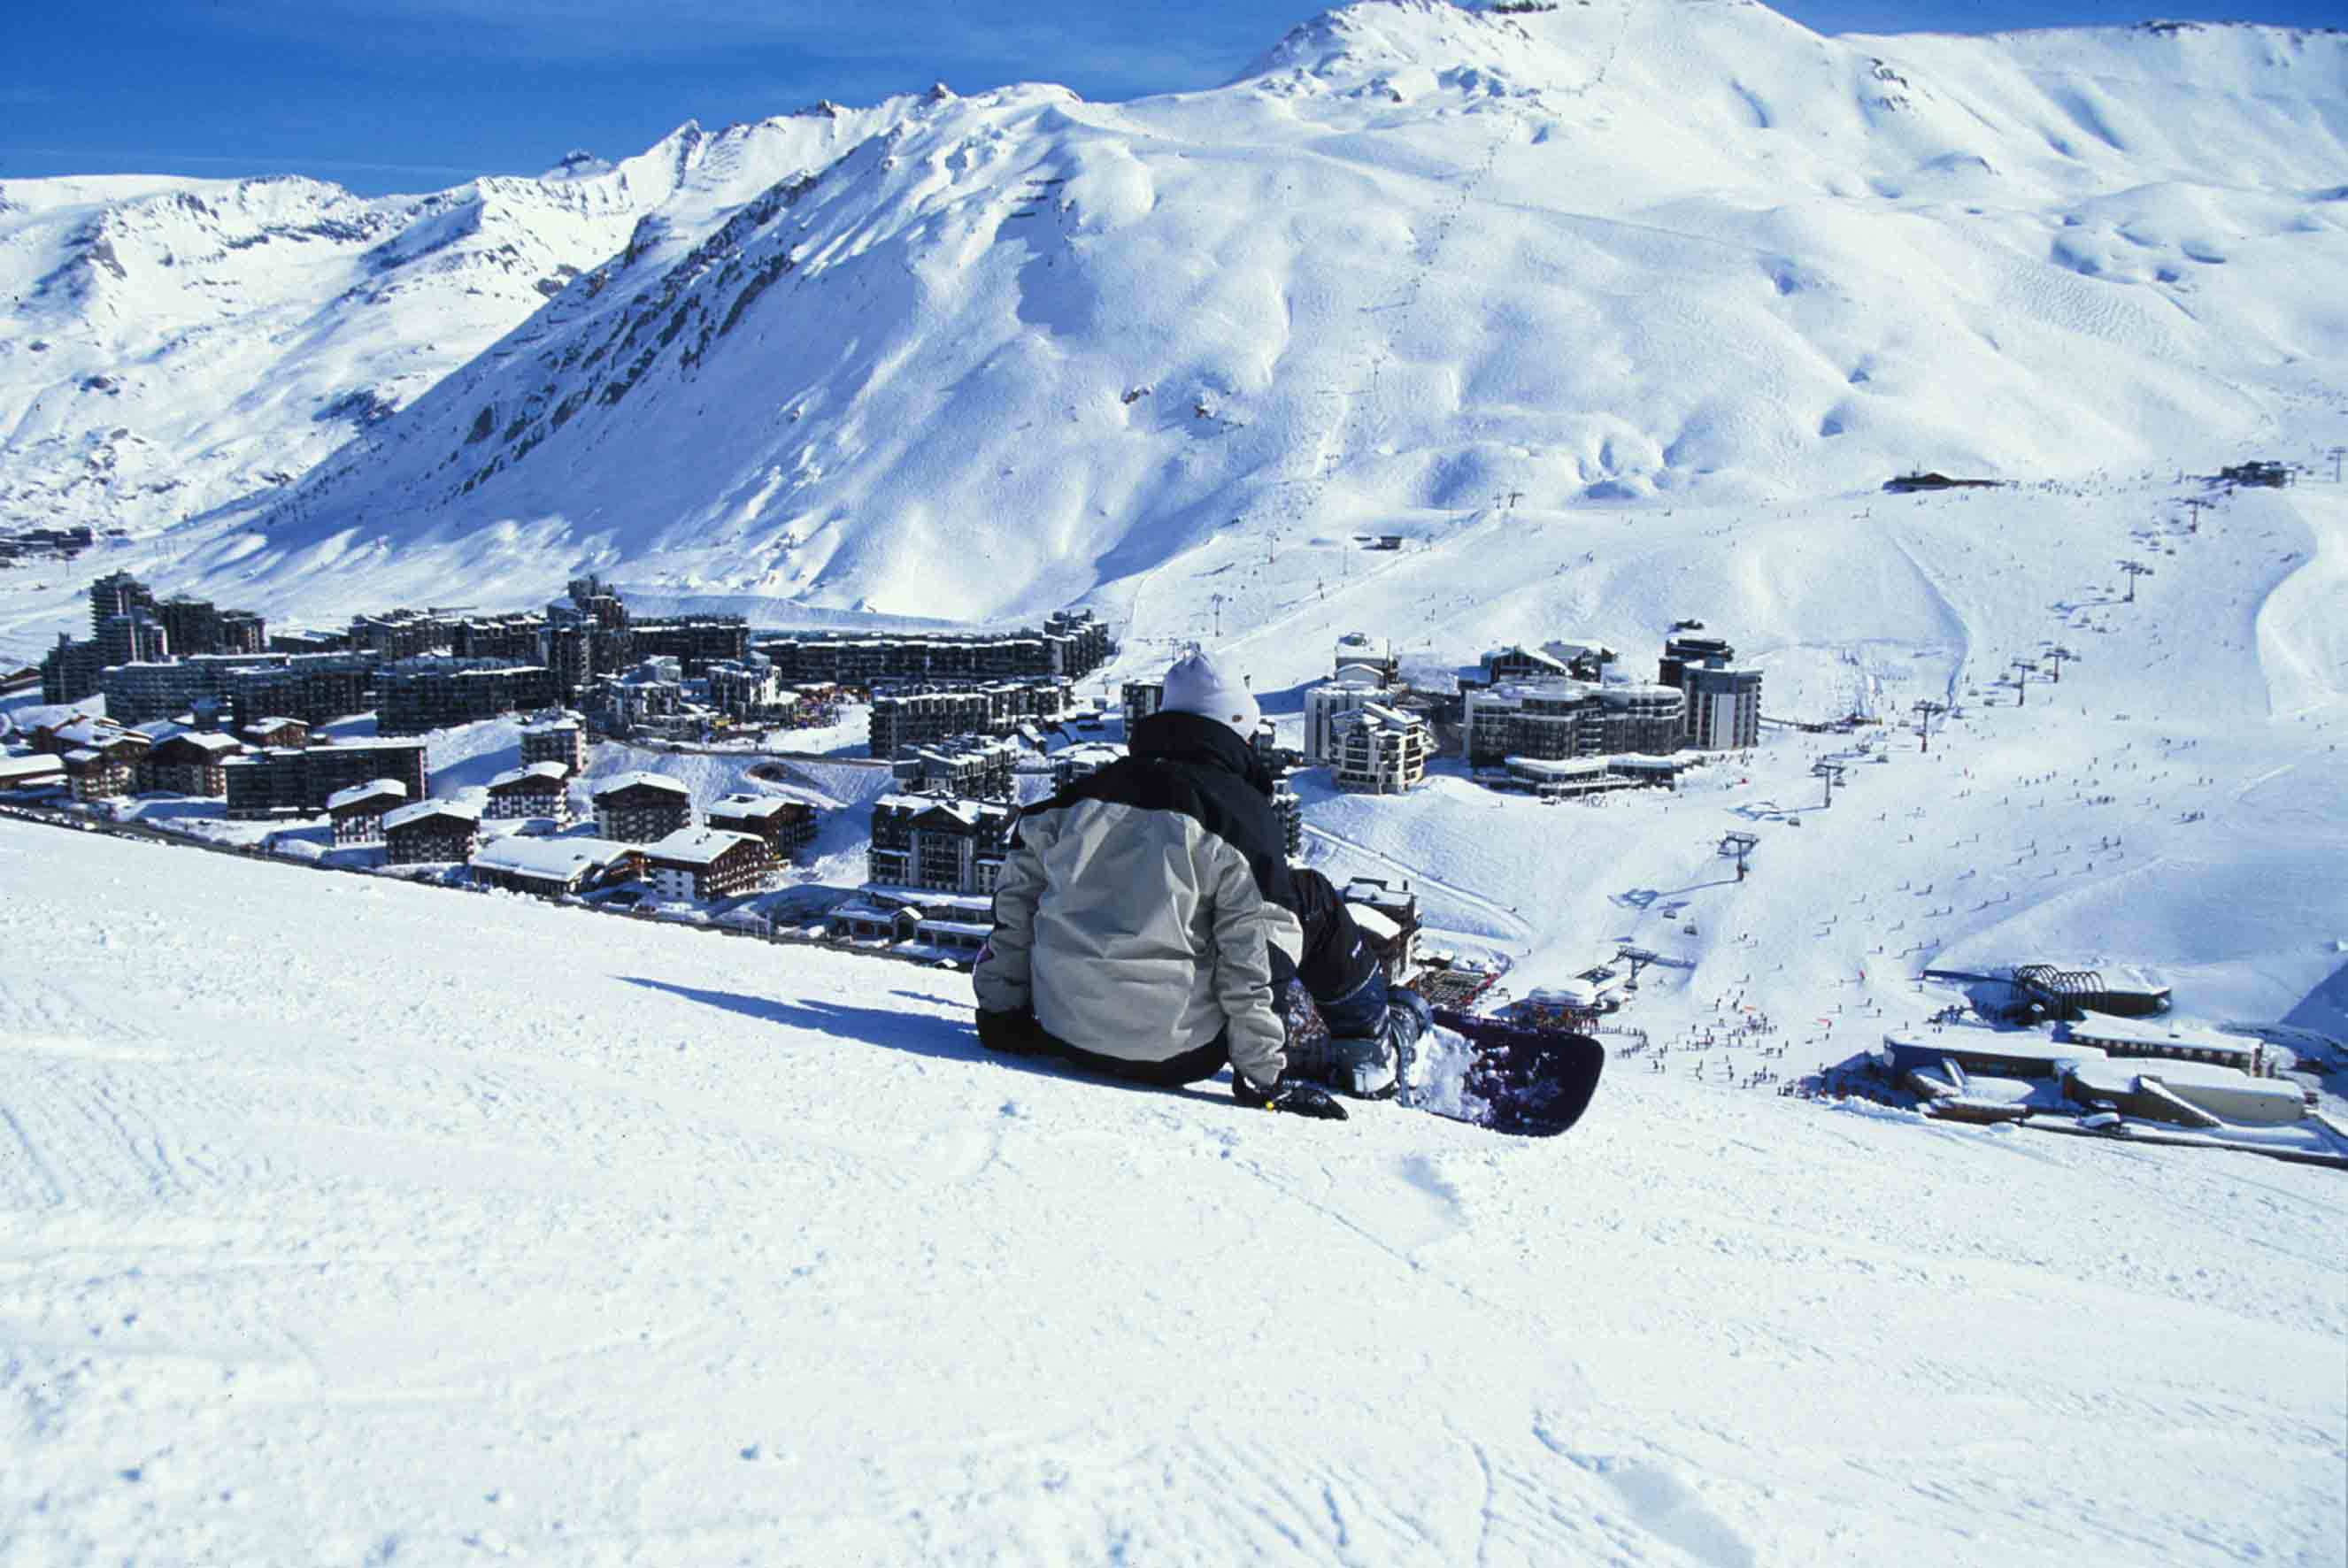 Winter holiday in the ski resort of Tignes France wallpapers and 2653x1772